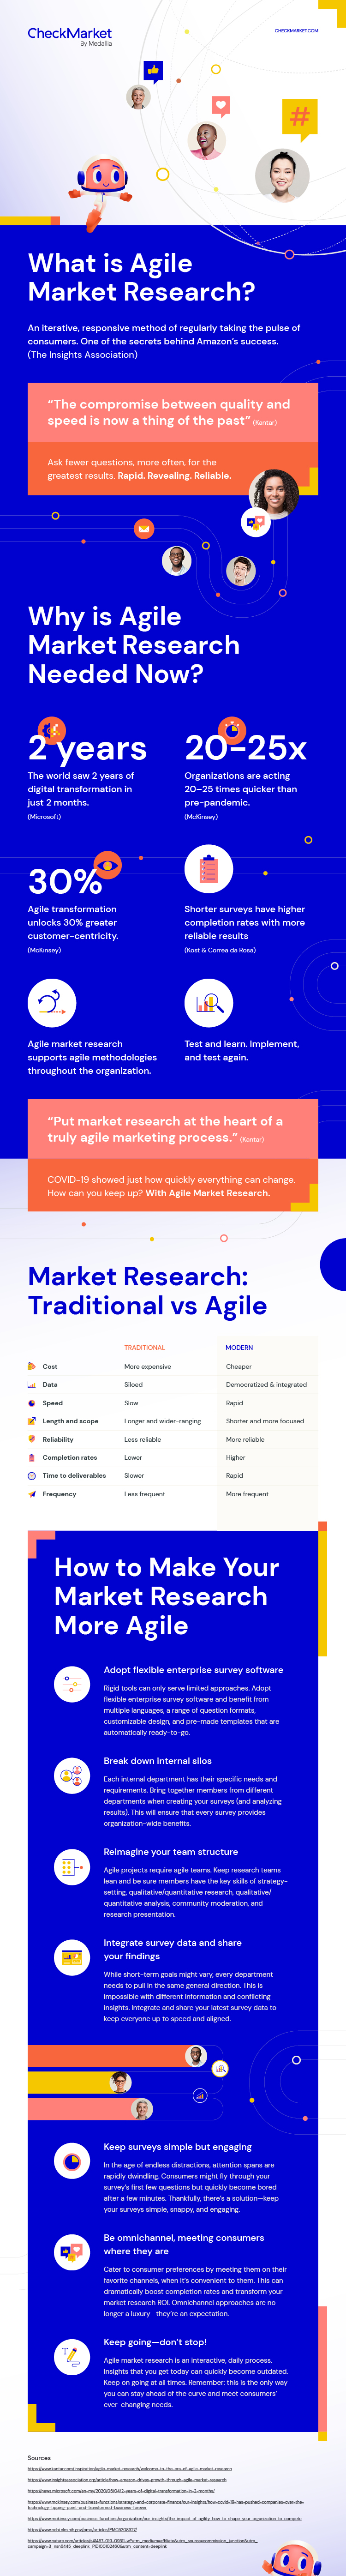 agile market research infographic